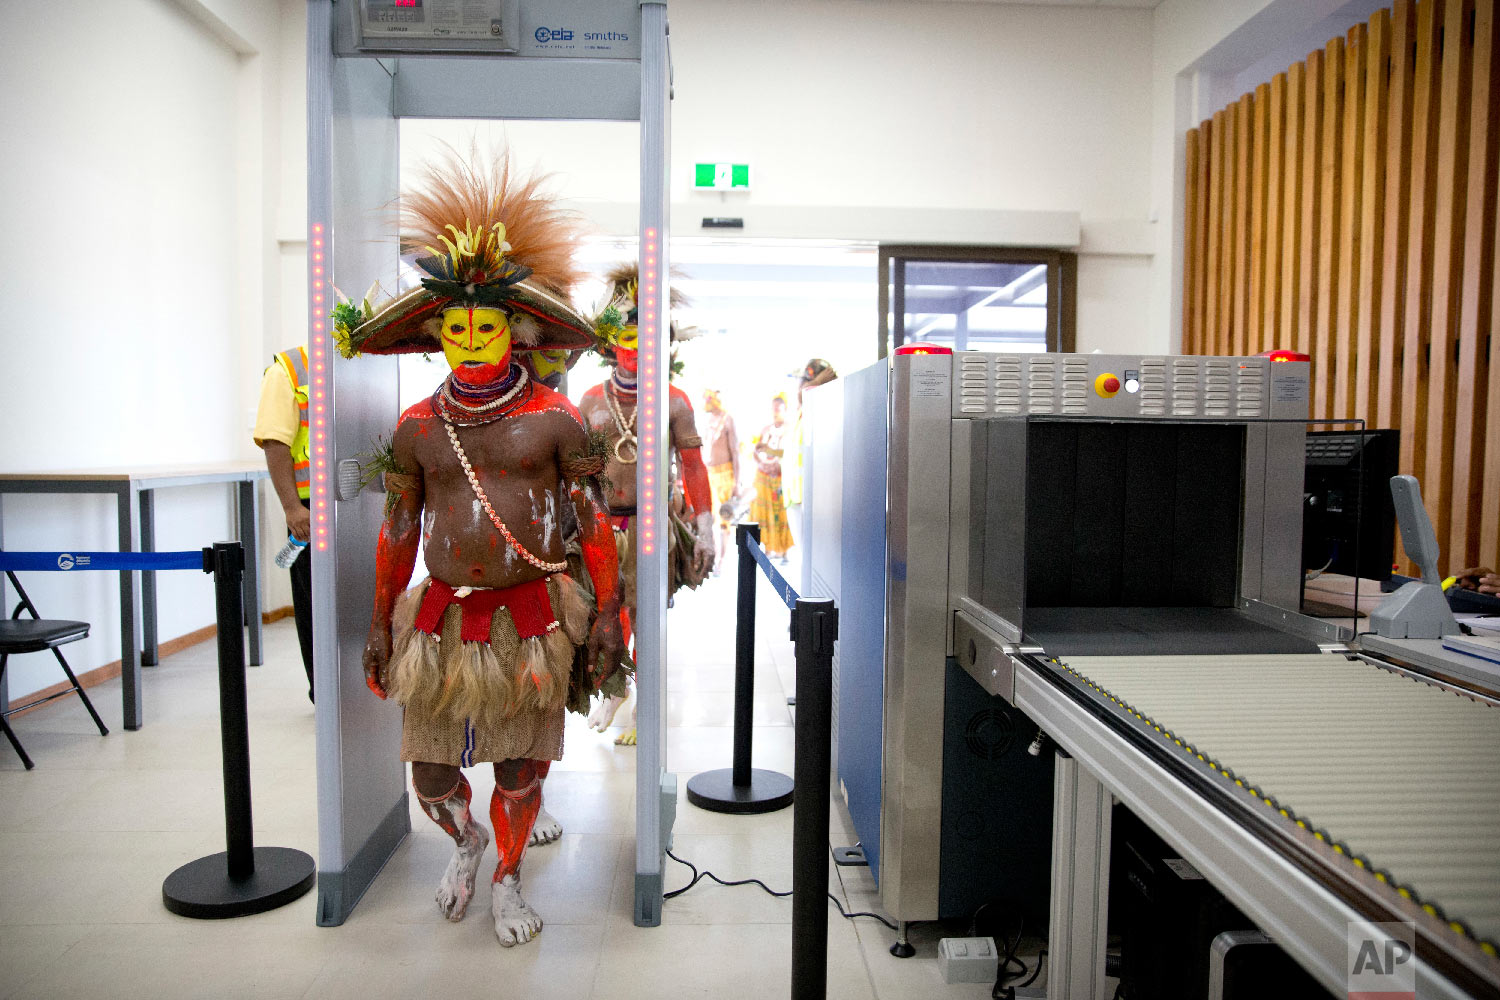 Performers in traditional dresses pass through a security screening at Jacksons International Airport in Port Moresby, Papua New Guinea, ahead of a visit by U.S. Vice President Mike Pence, Saturday, Nov. 17, 2018. (AP Photo/Mark Schiefelbein)